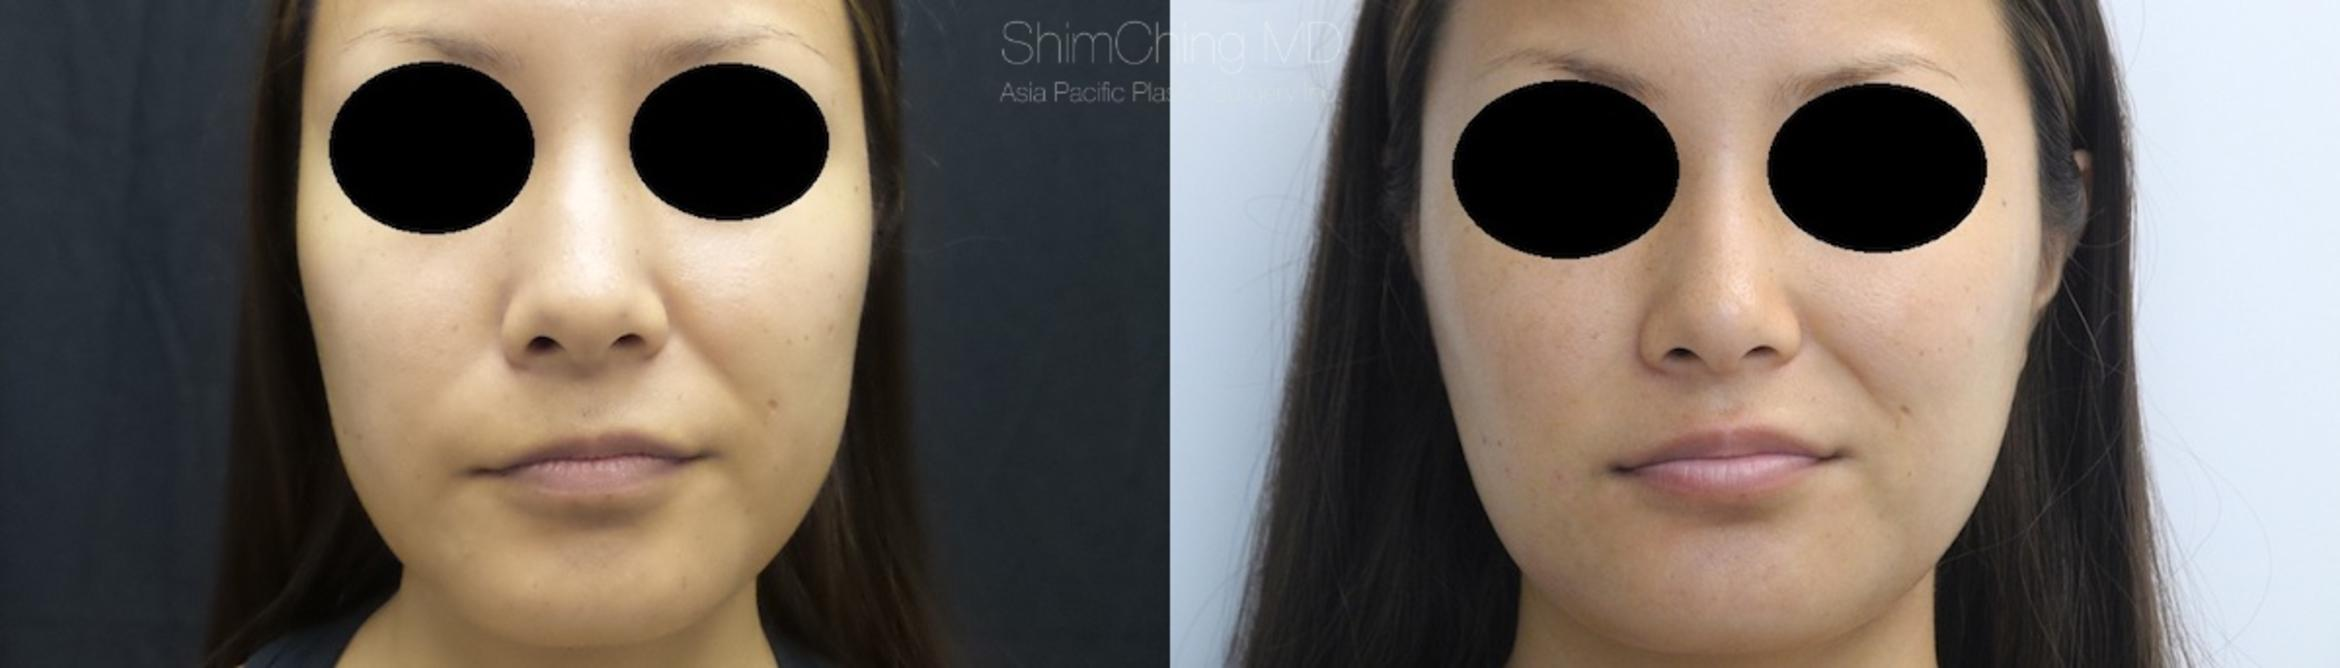 Facial Cosmetic Surgery Case 115 Before & After View #1 | Honolulu, HI | Shim Ching, MD: Asia Pacific Plastic Surgery